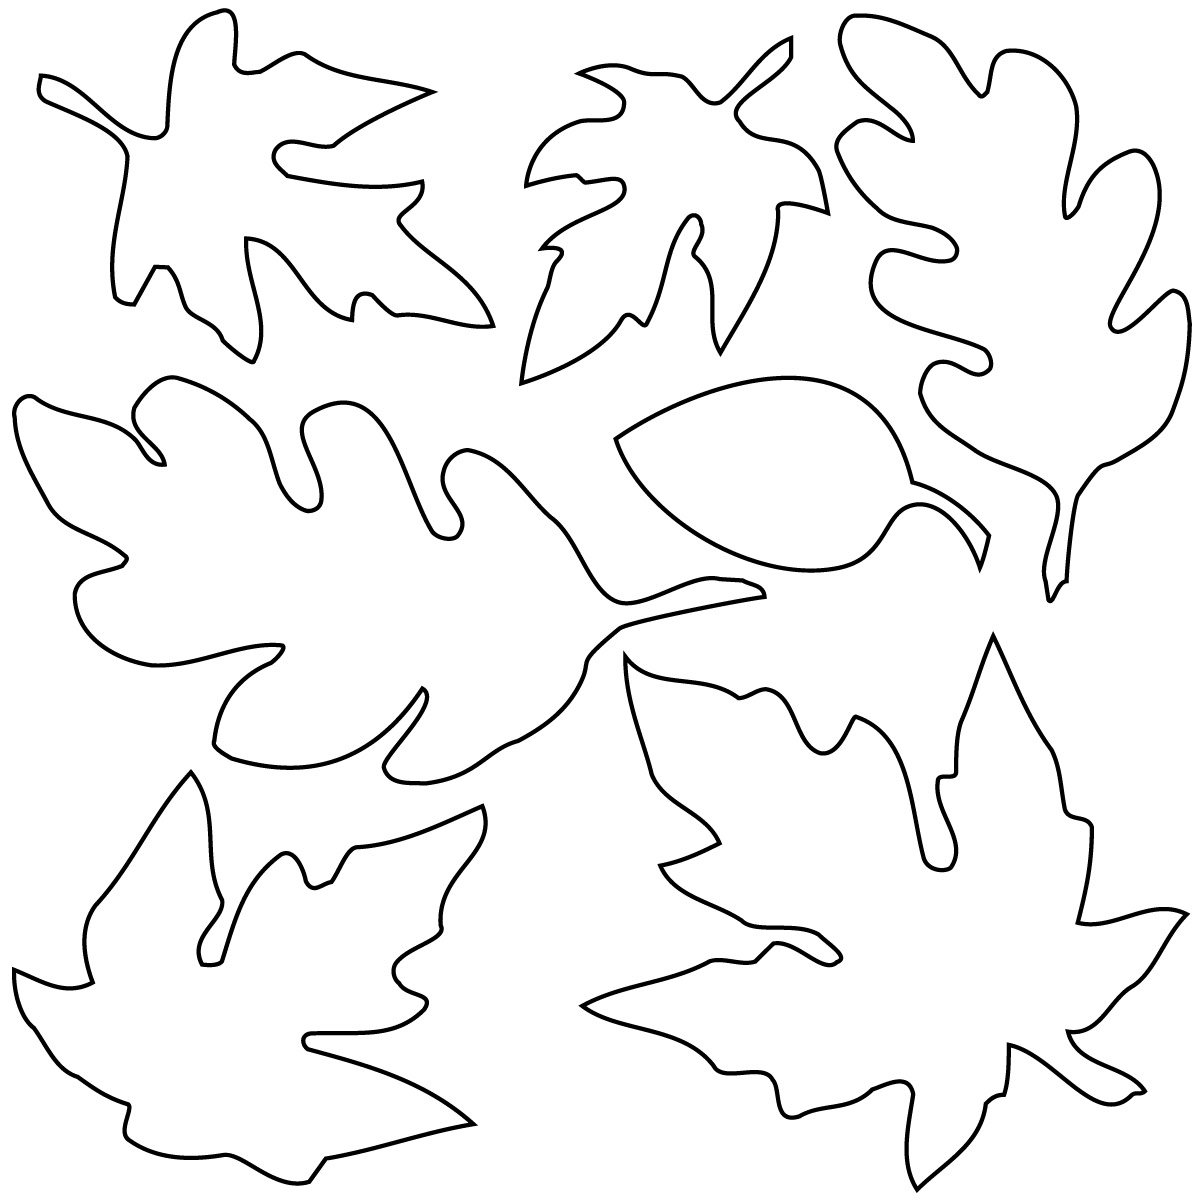 Autumn leaves clipart black and white picture stock 57+ Fall Leaves Clip Art Black And White | ClipartLook picture stock